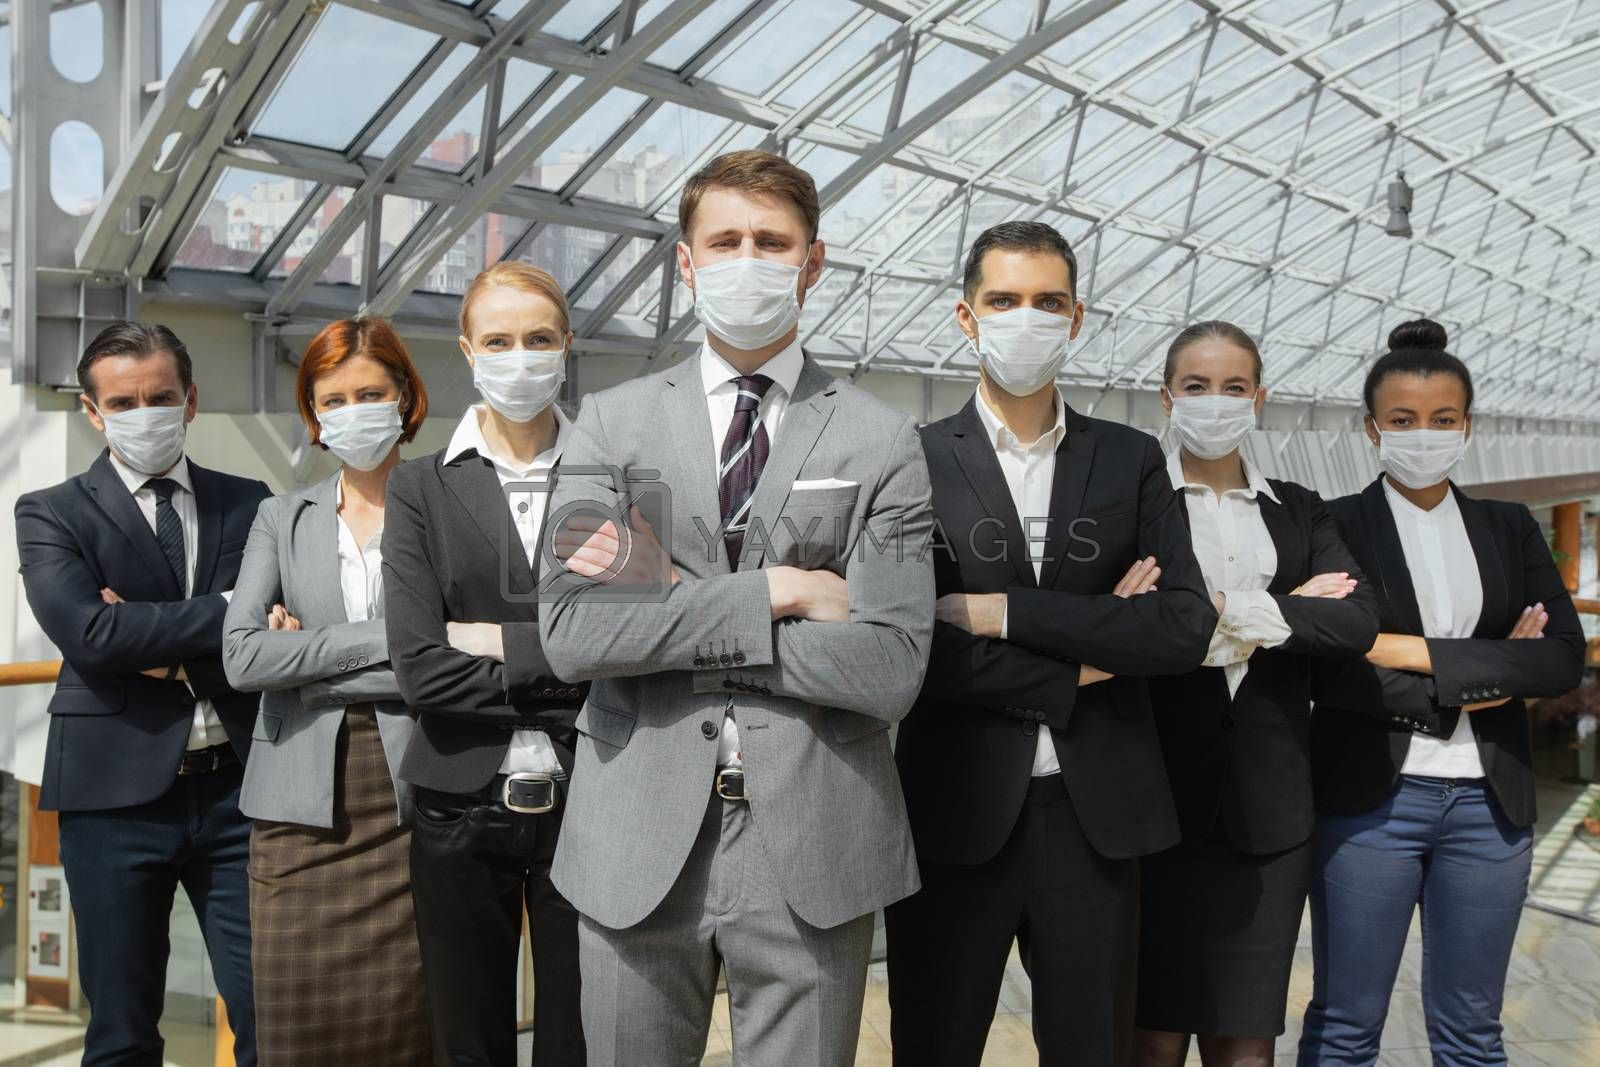 Business people wearing protective surgical masks and standing together with arms crossed, healthcare and covid-19 prevention concept